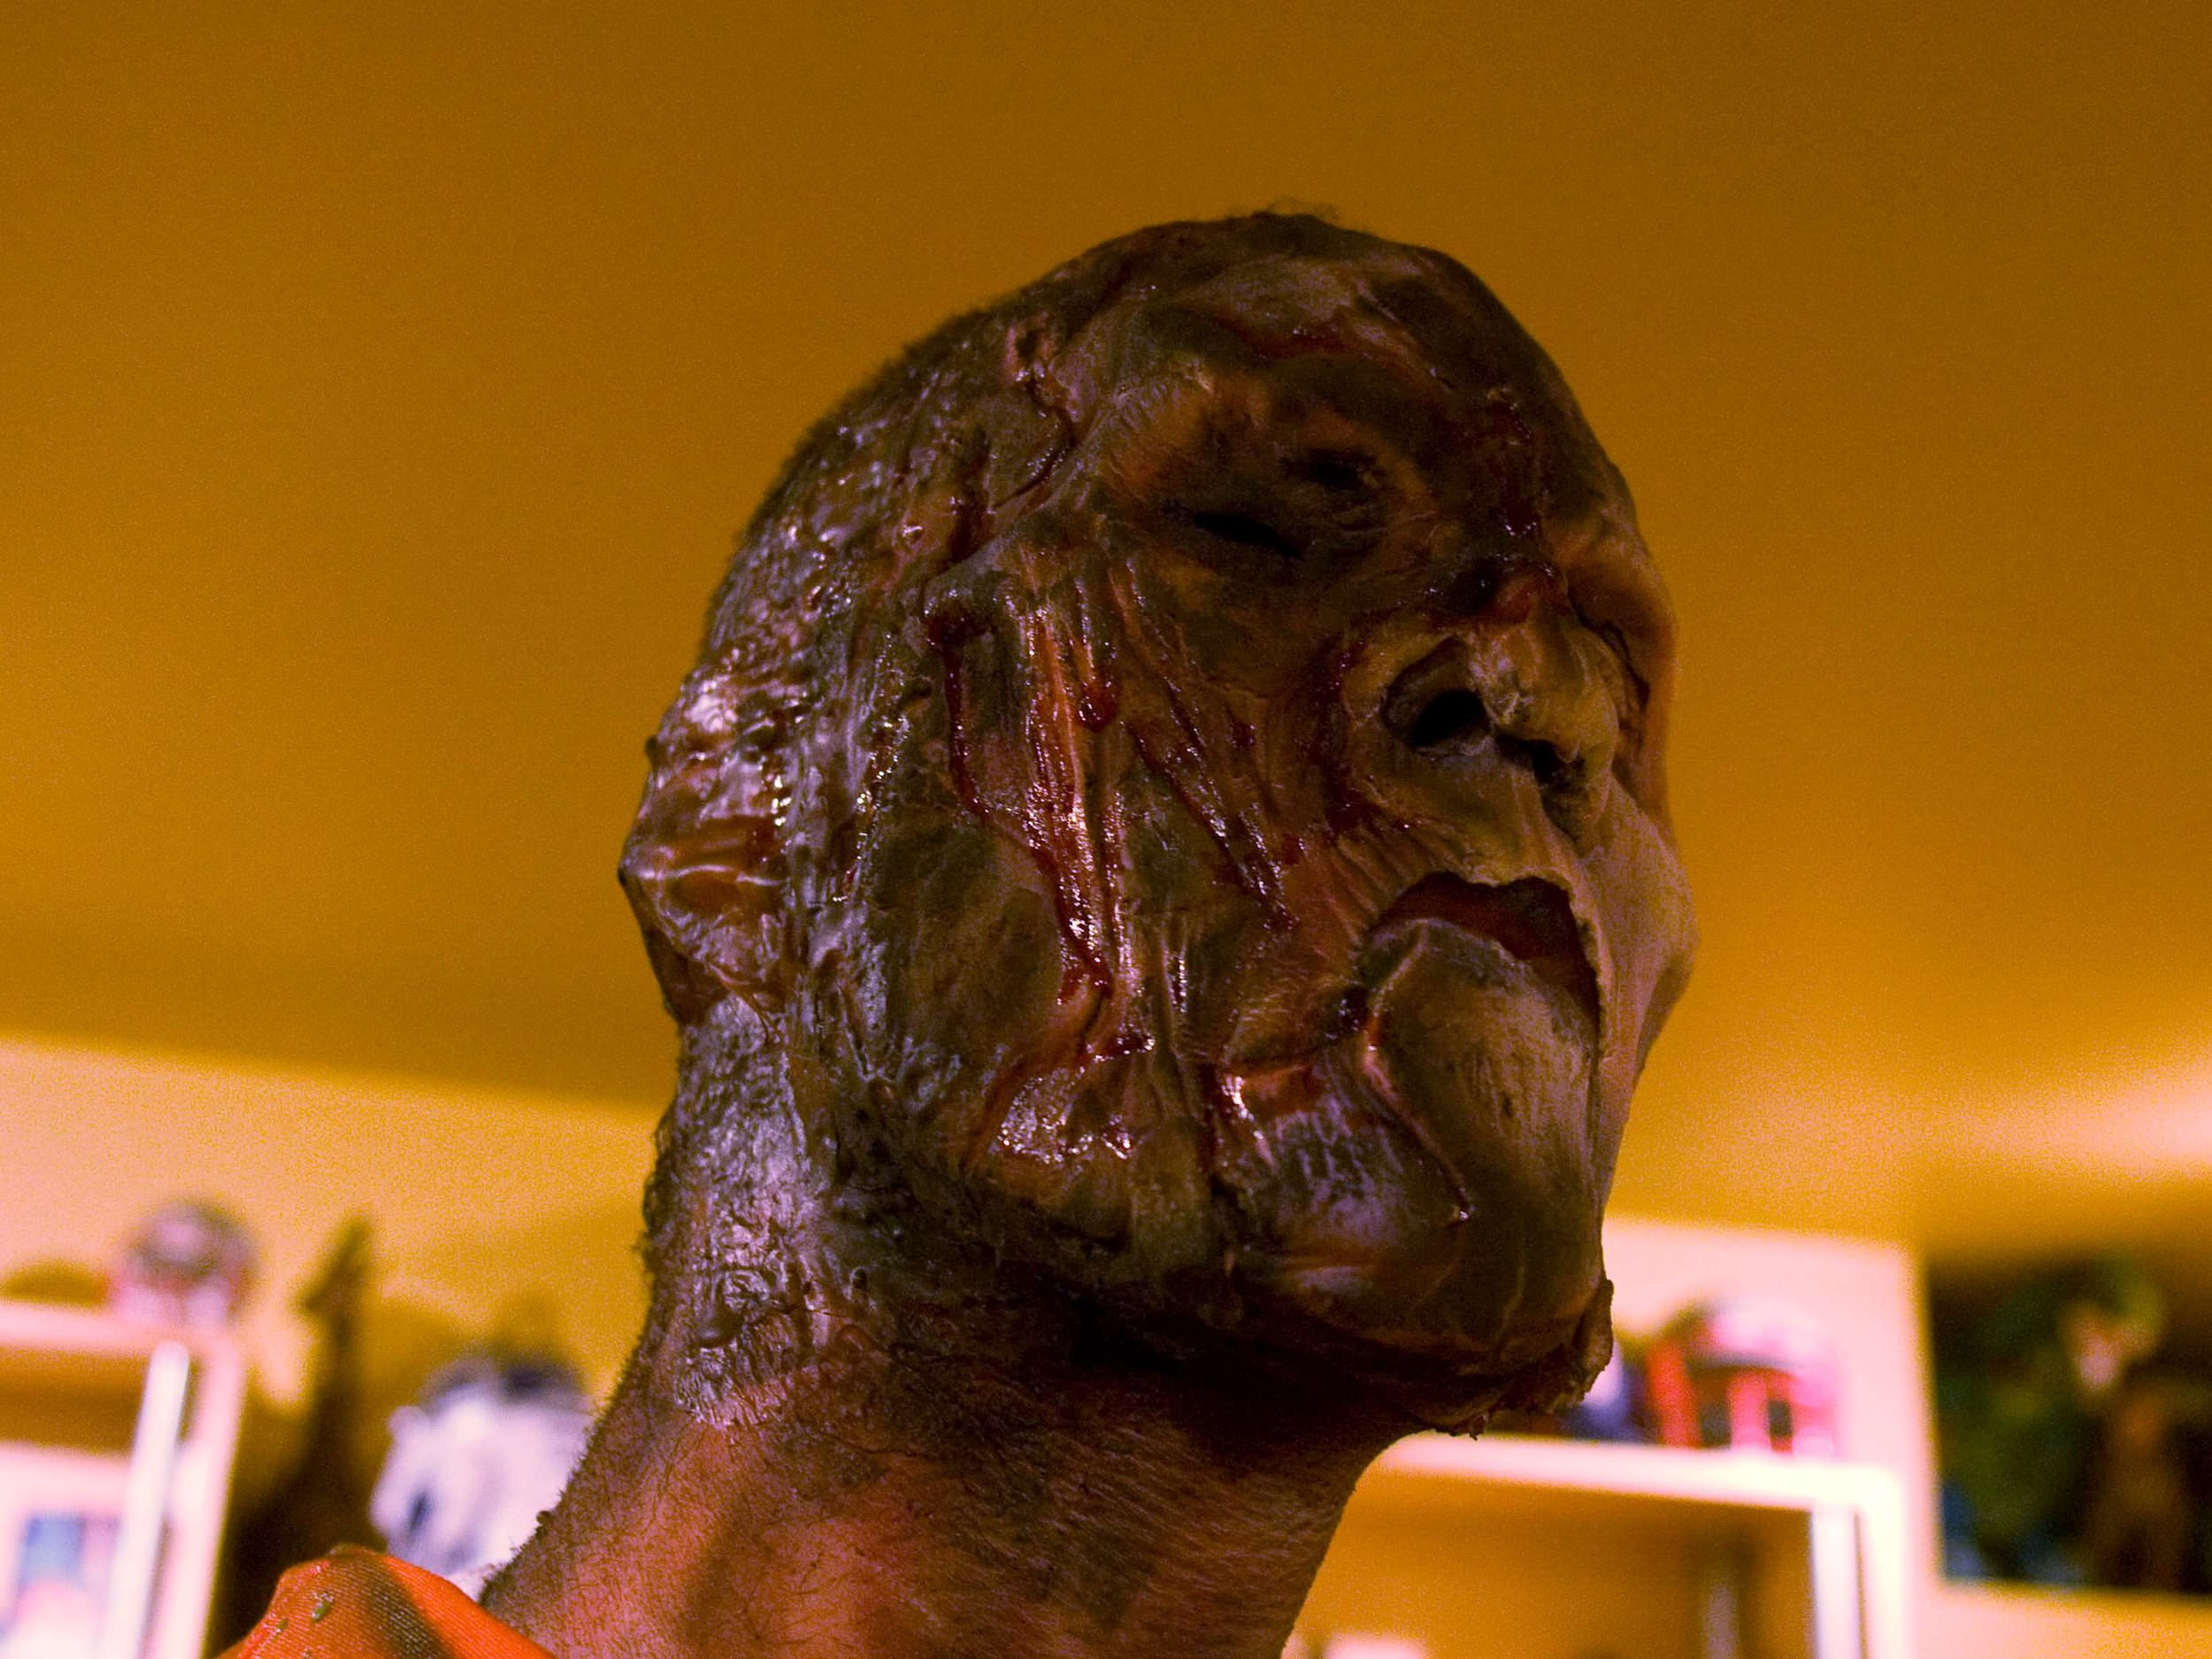 burn-victim-prosthetic-makeup-at-halloween-party-in-boston-ma-with-harrington-events.jpg